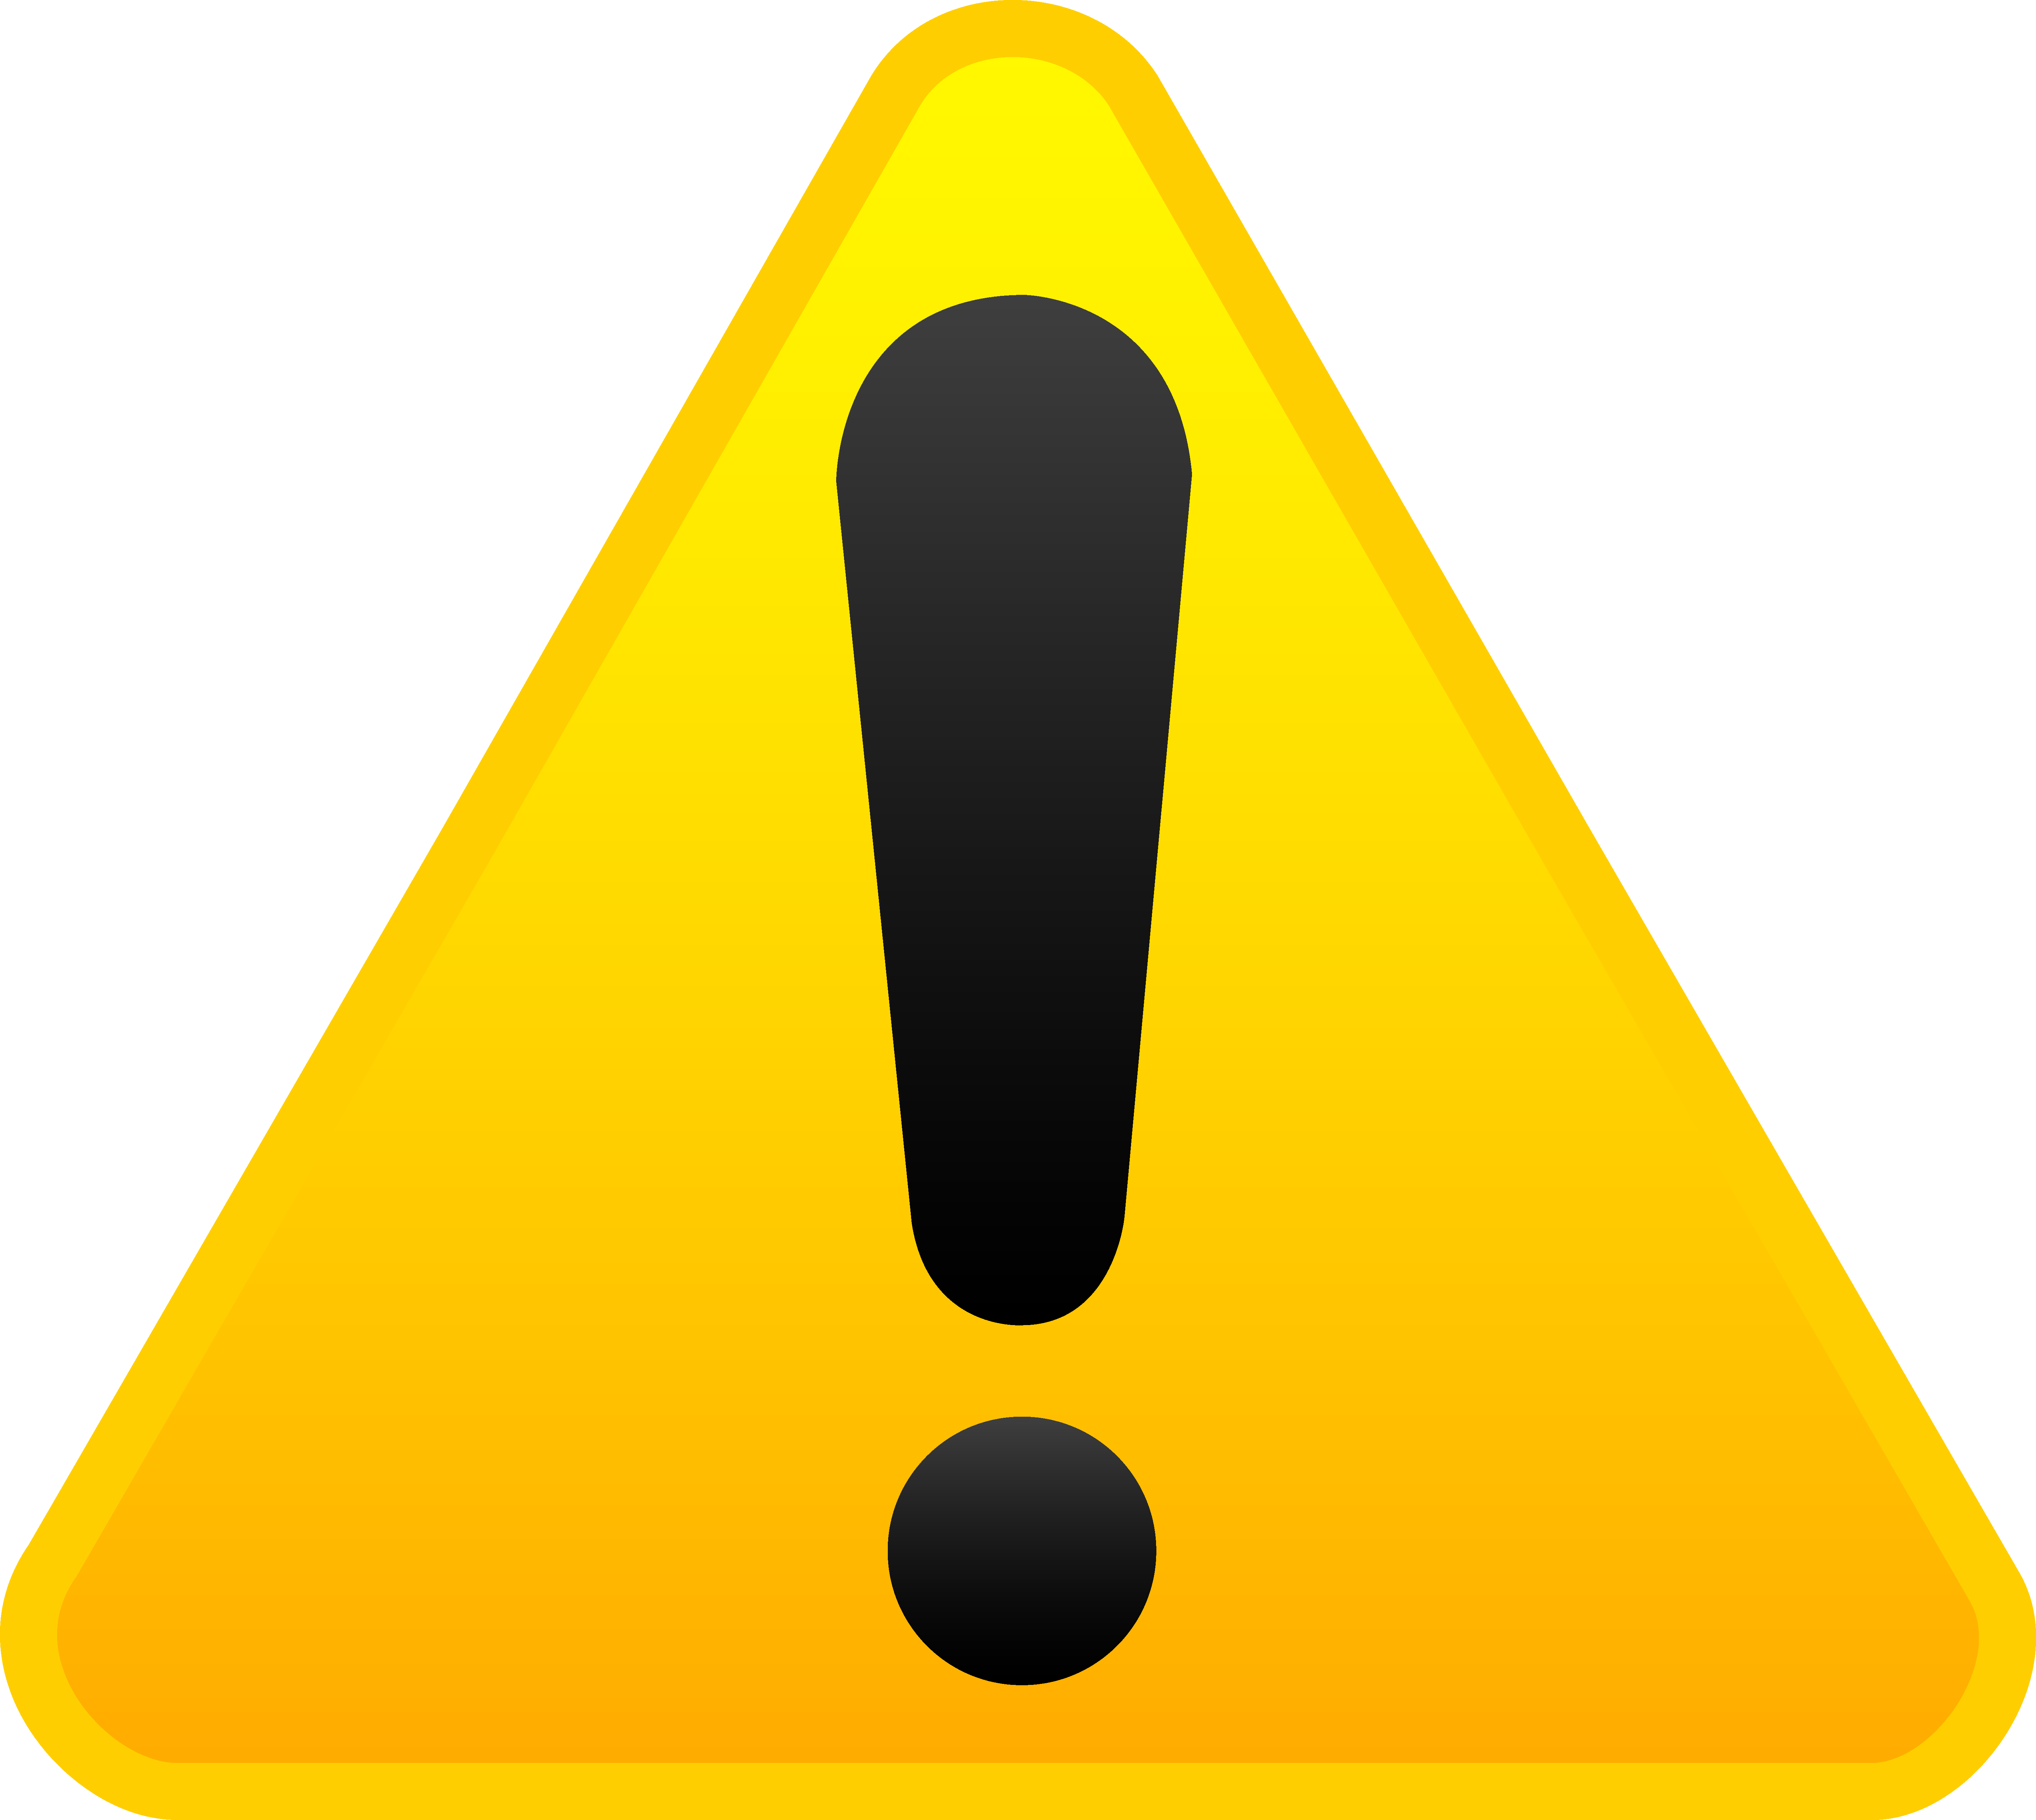 Yellow exclamation alert symbol. Caution clipart mark